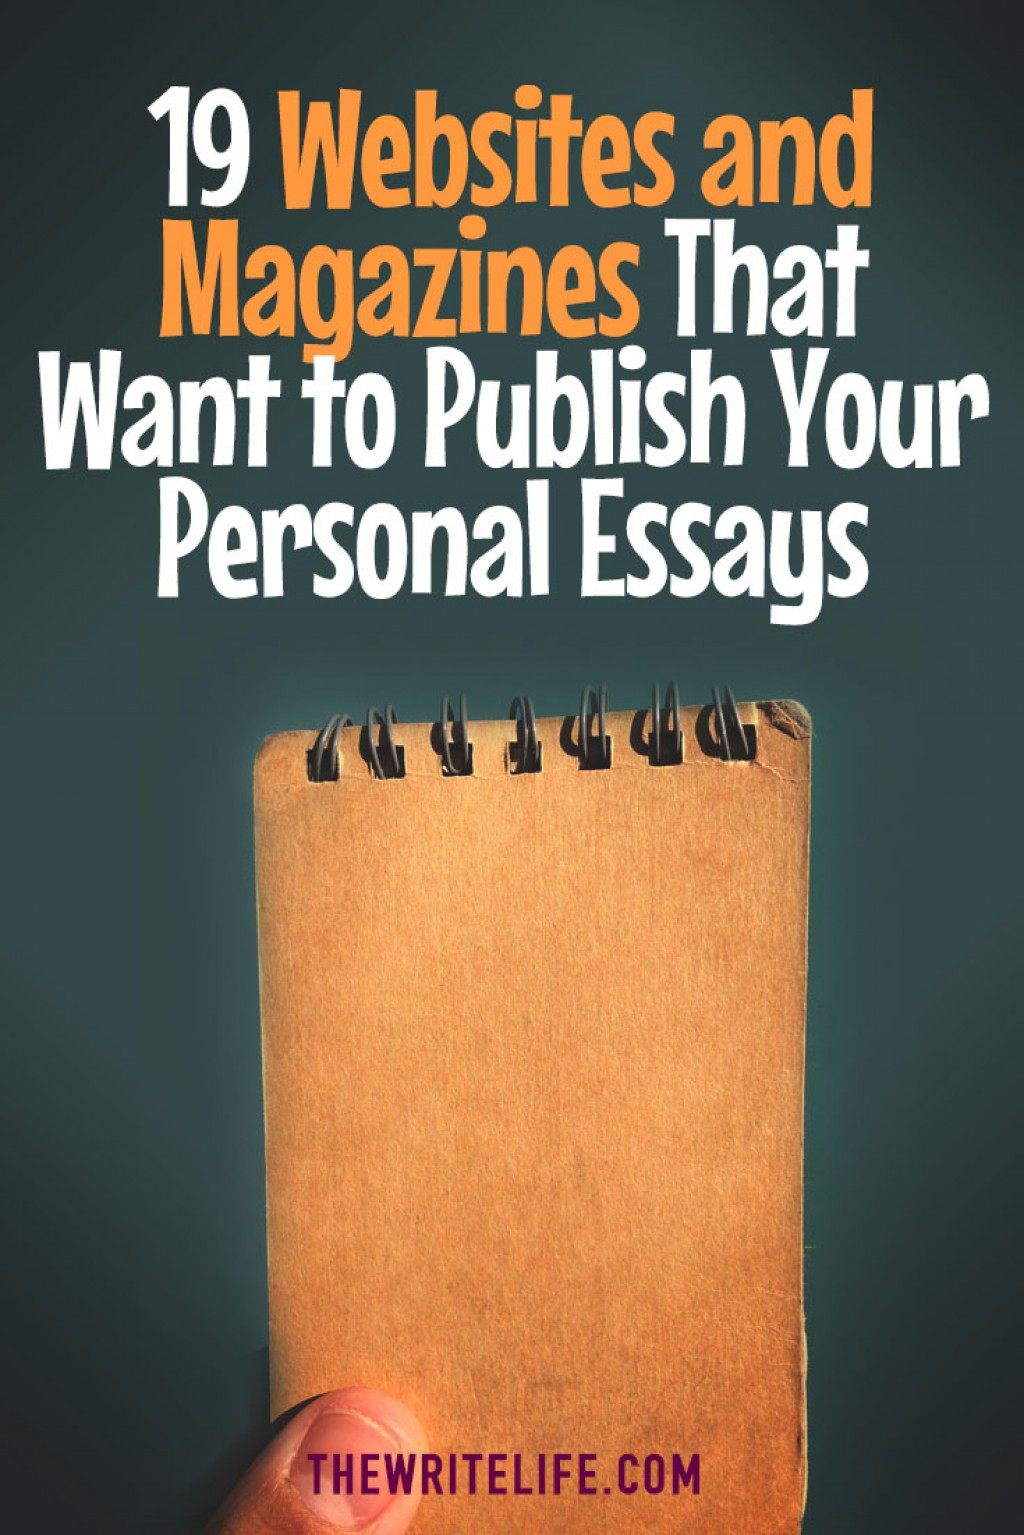 003 Magazines That Publish Personal Essays Get Published Essay Unforgettable India Uk Large